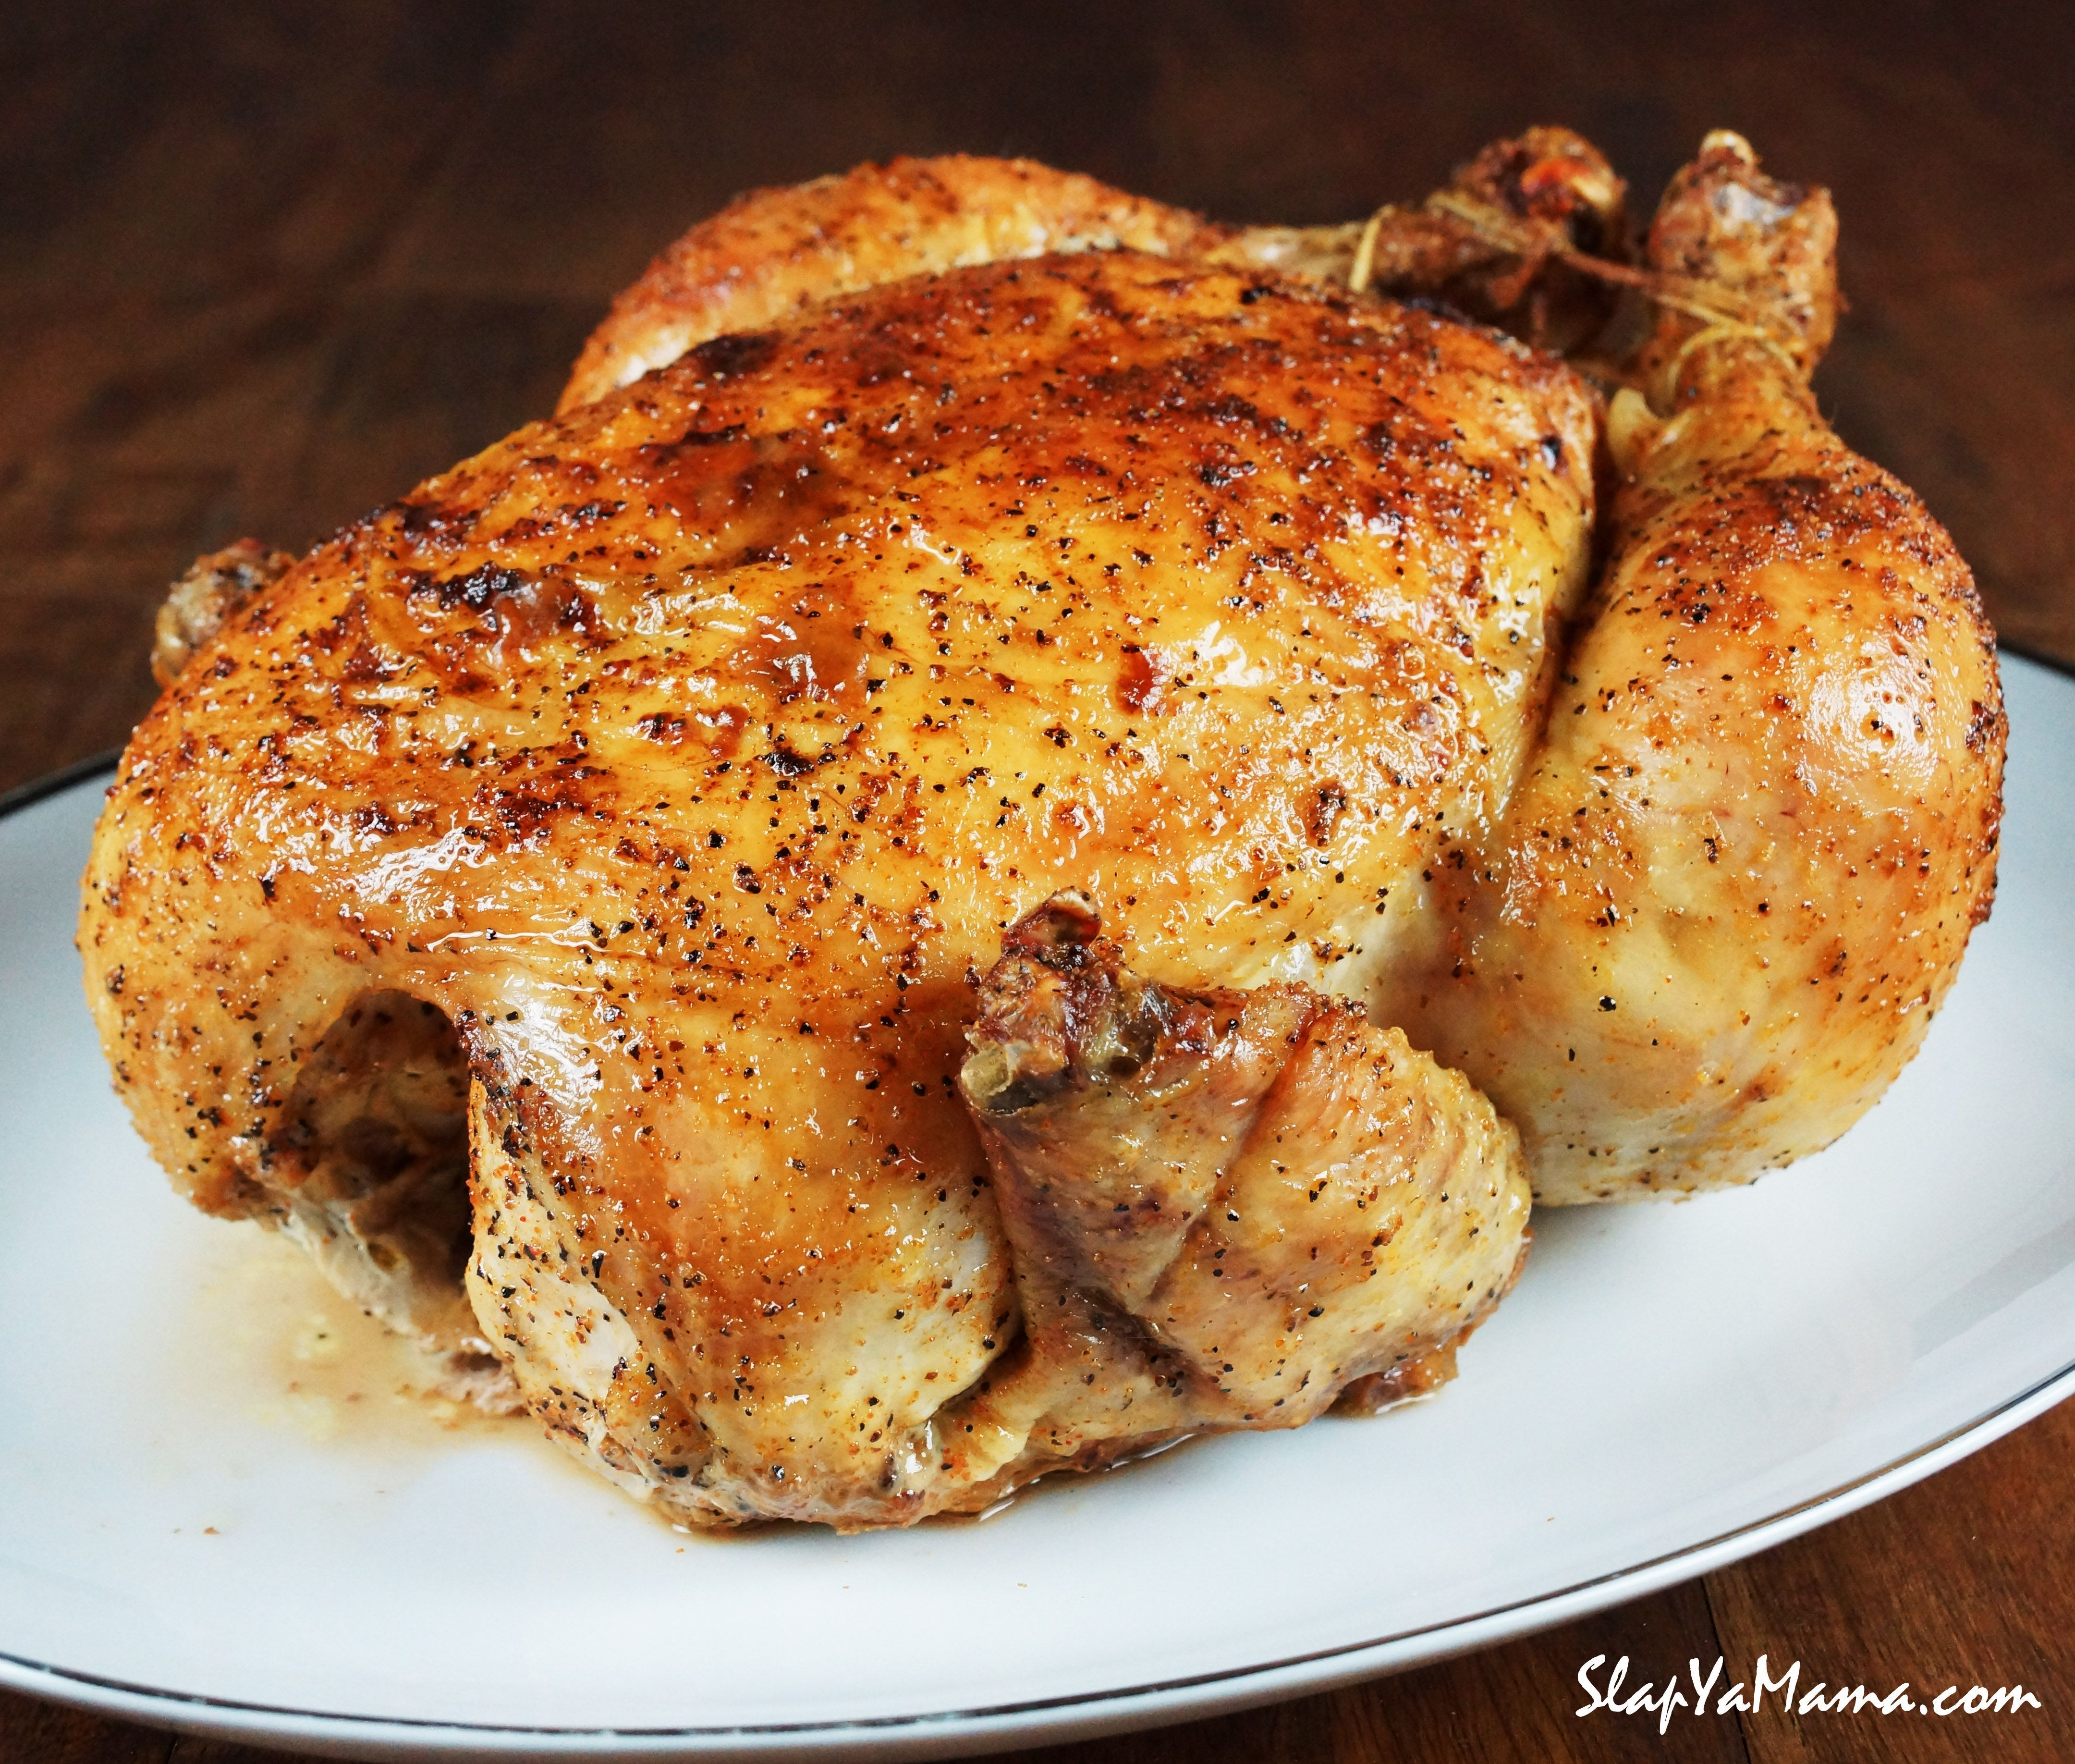 Baked Chicken Whole  Whole Baked Chicken Recipe